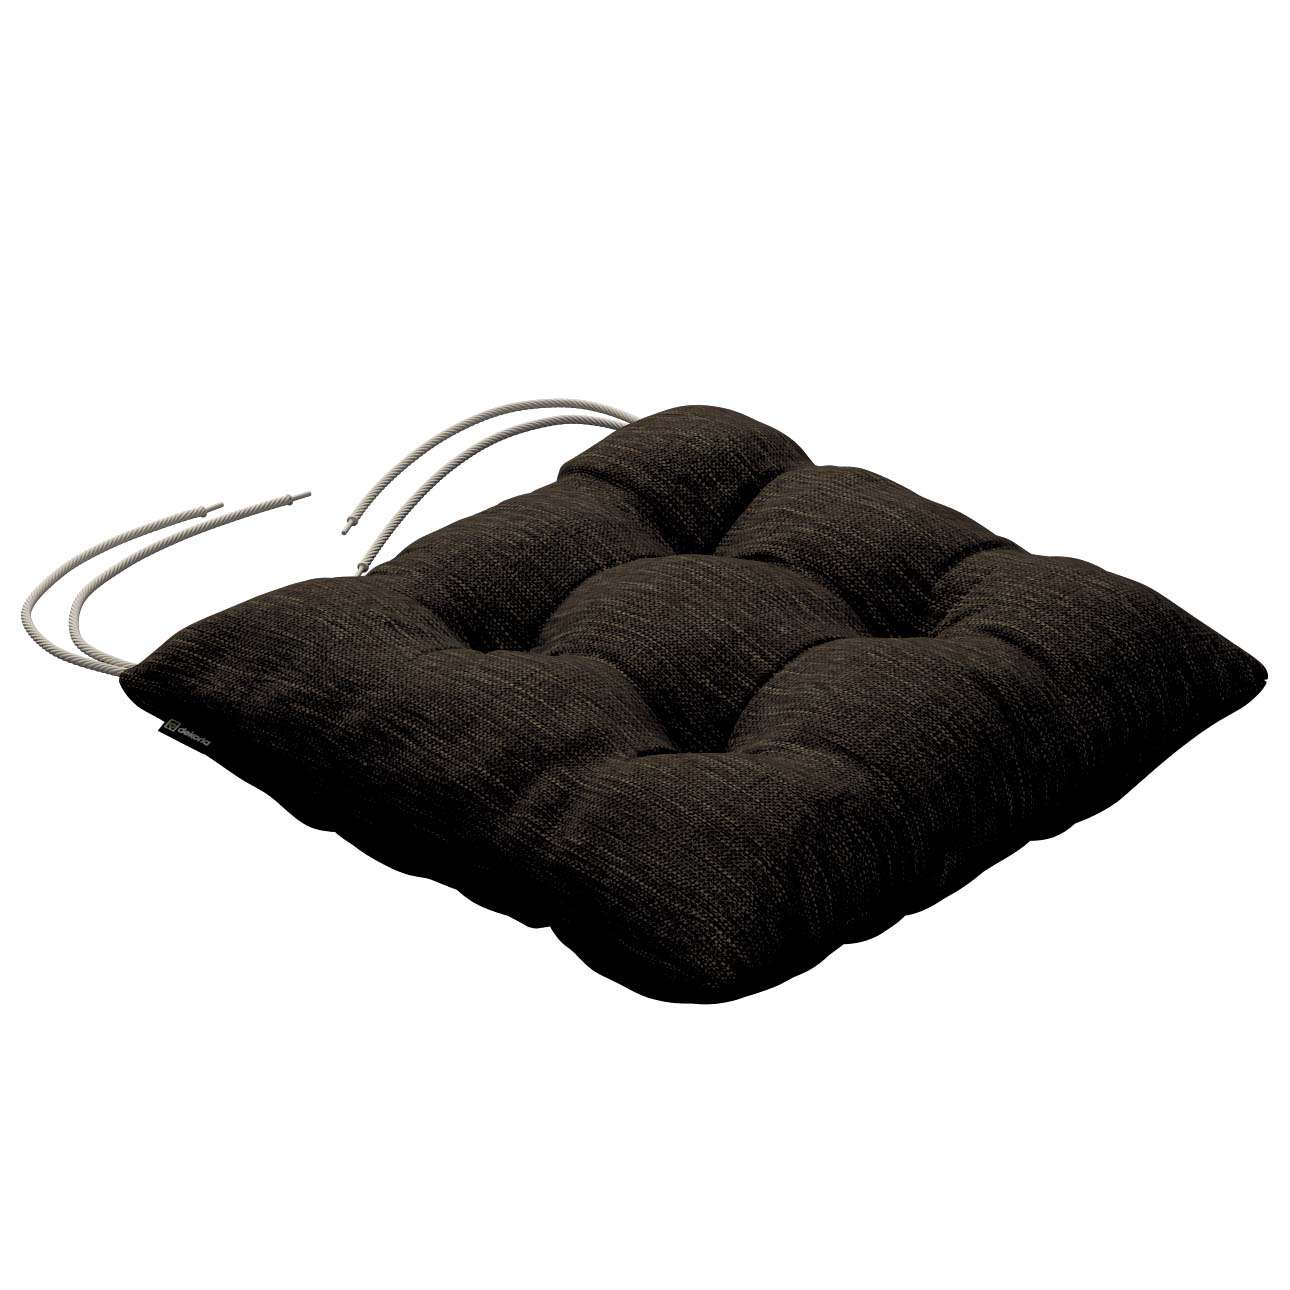 Jack seat pad with ties in collection Living, fabric: 106-93